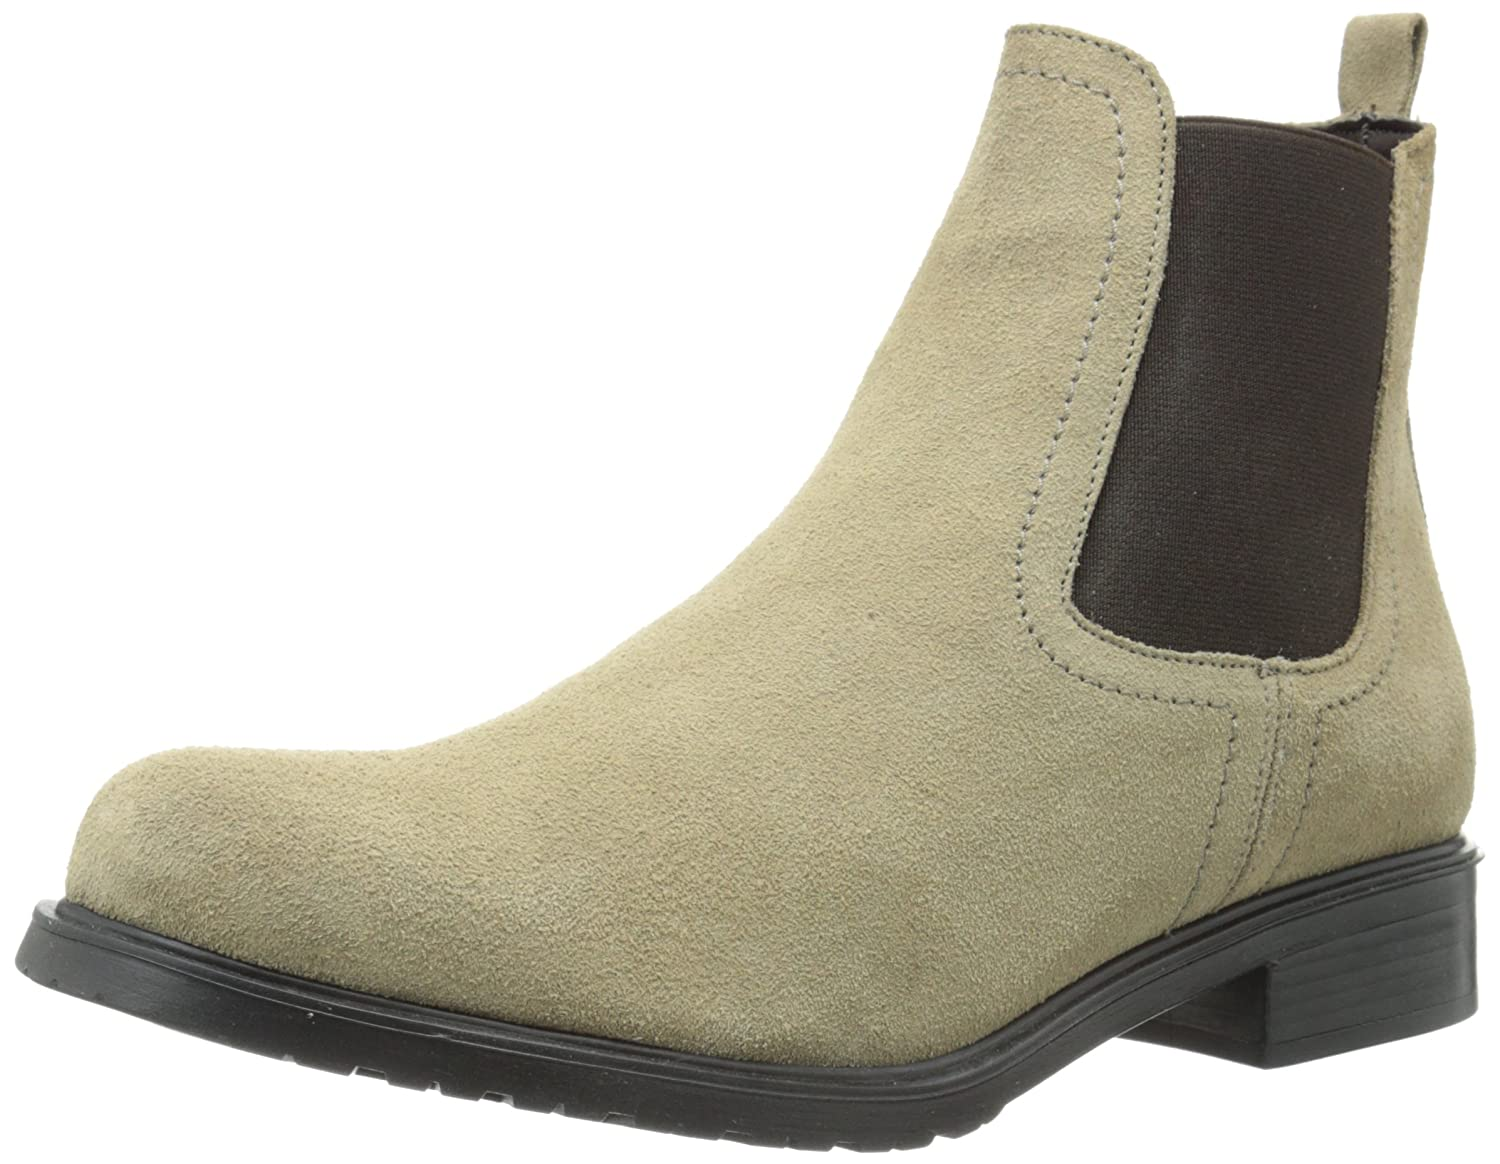 The FLEXX Women's Shetland Boot B00TI6OR88 10 B(M) US|Desert Suede